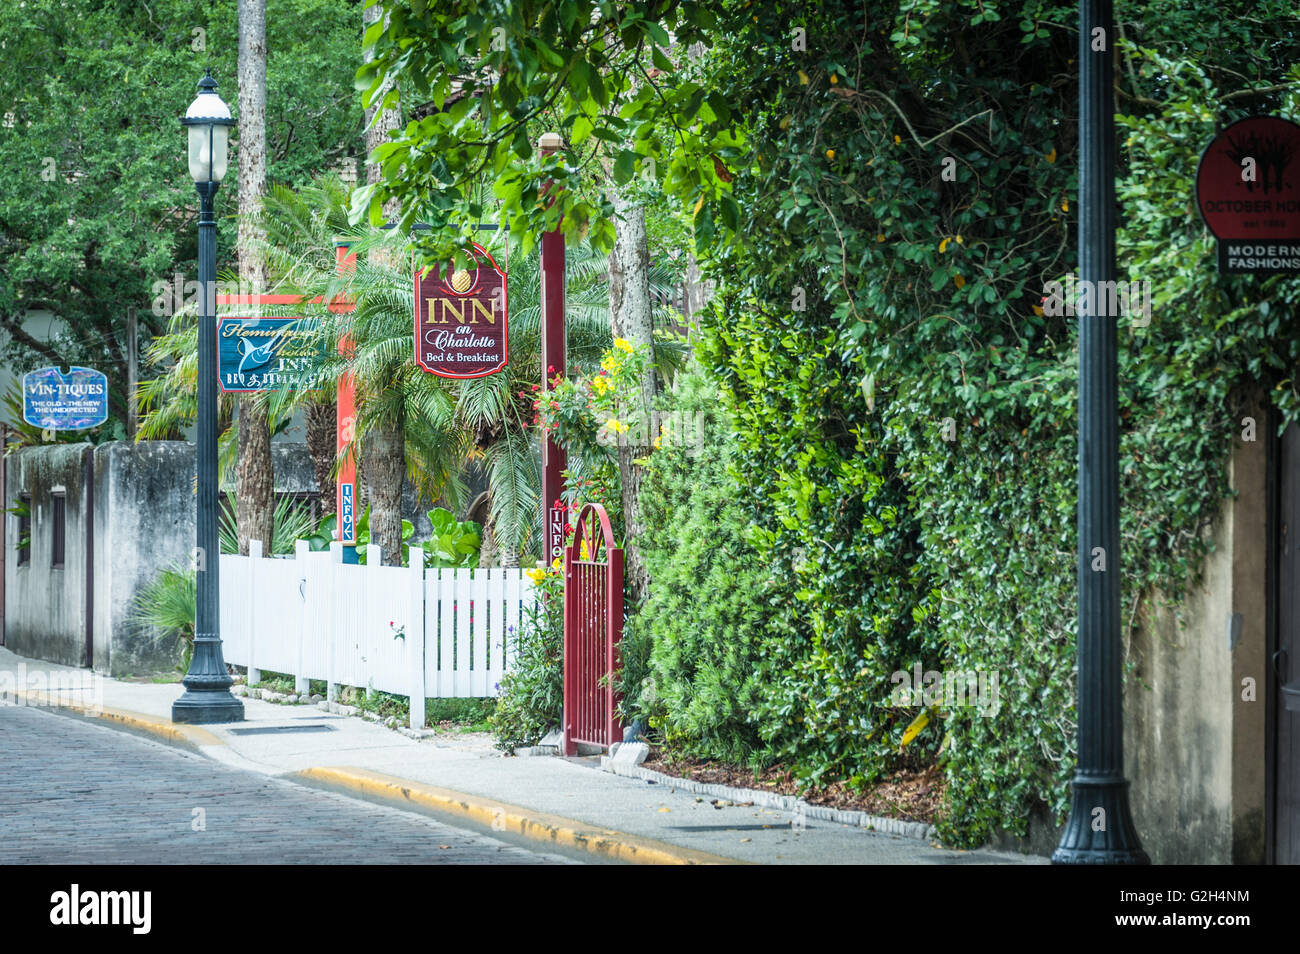 Bed & Breakfast inns on Charlotte Street in Old Town St. Augustine, Florida, USA. - Stock Image